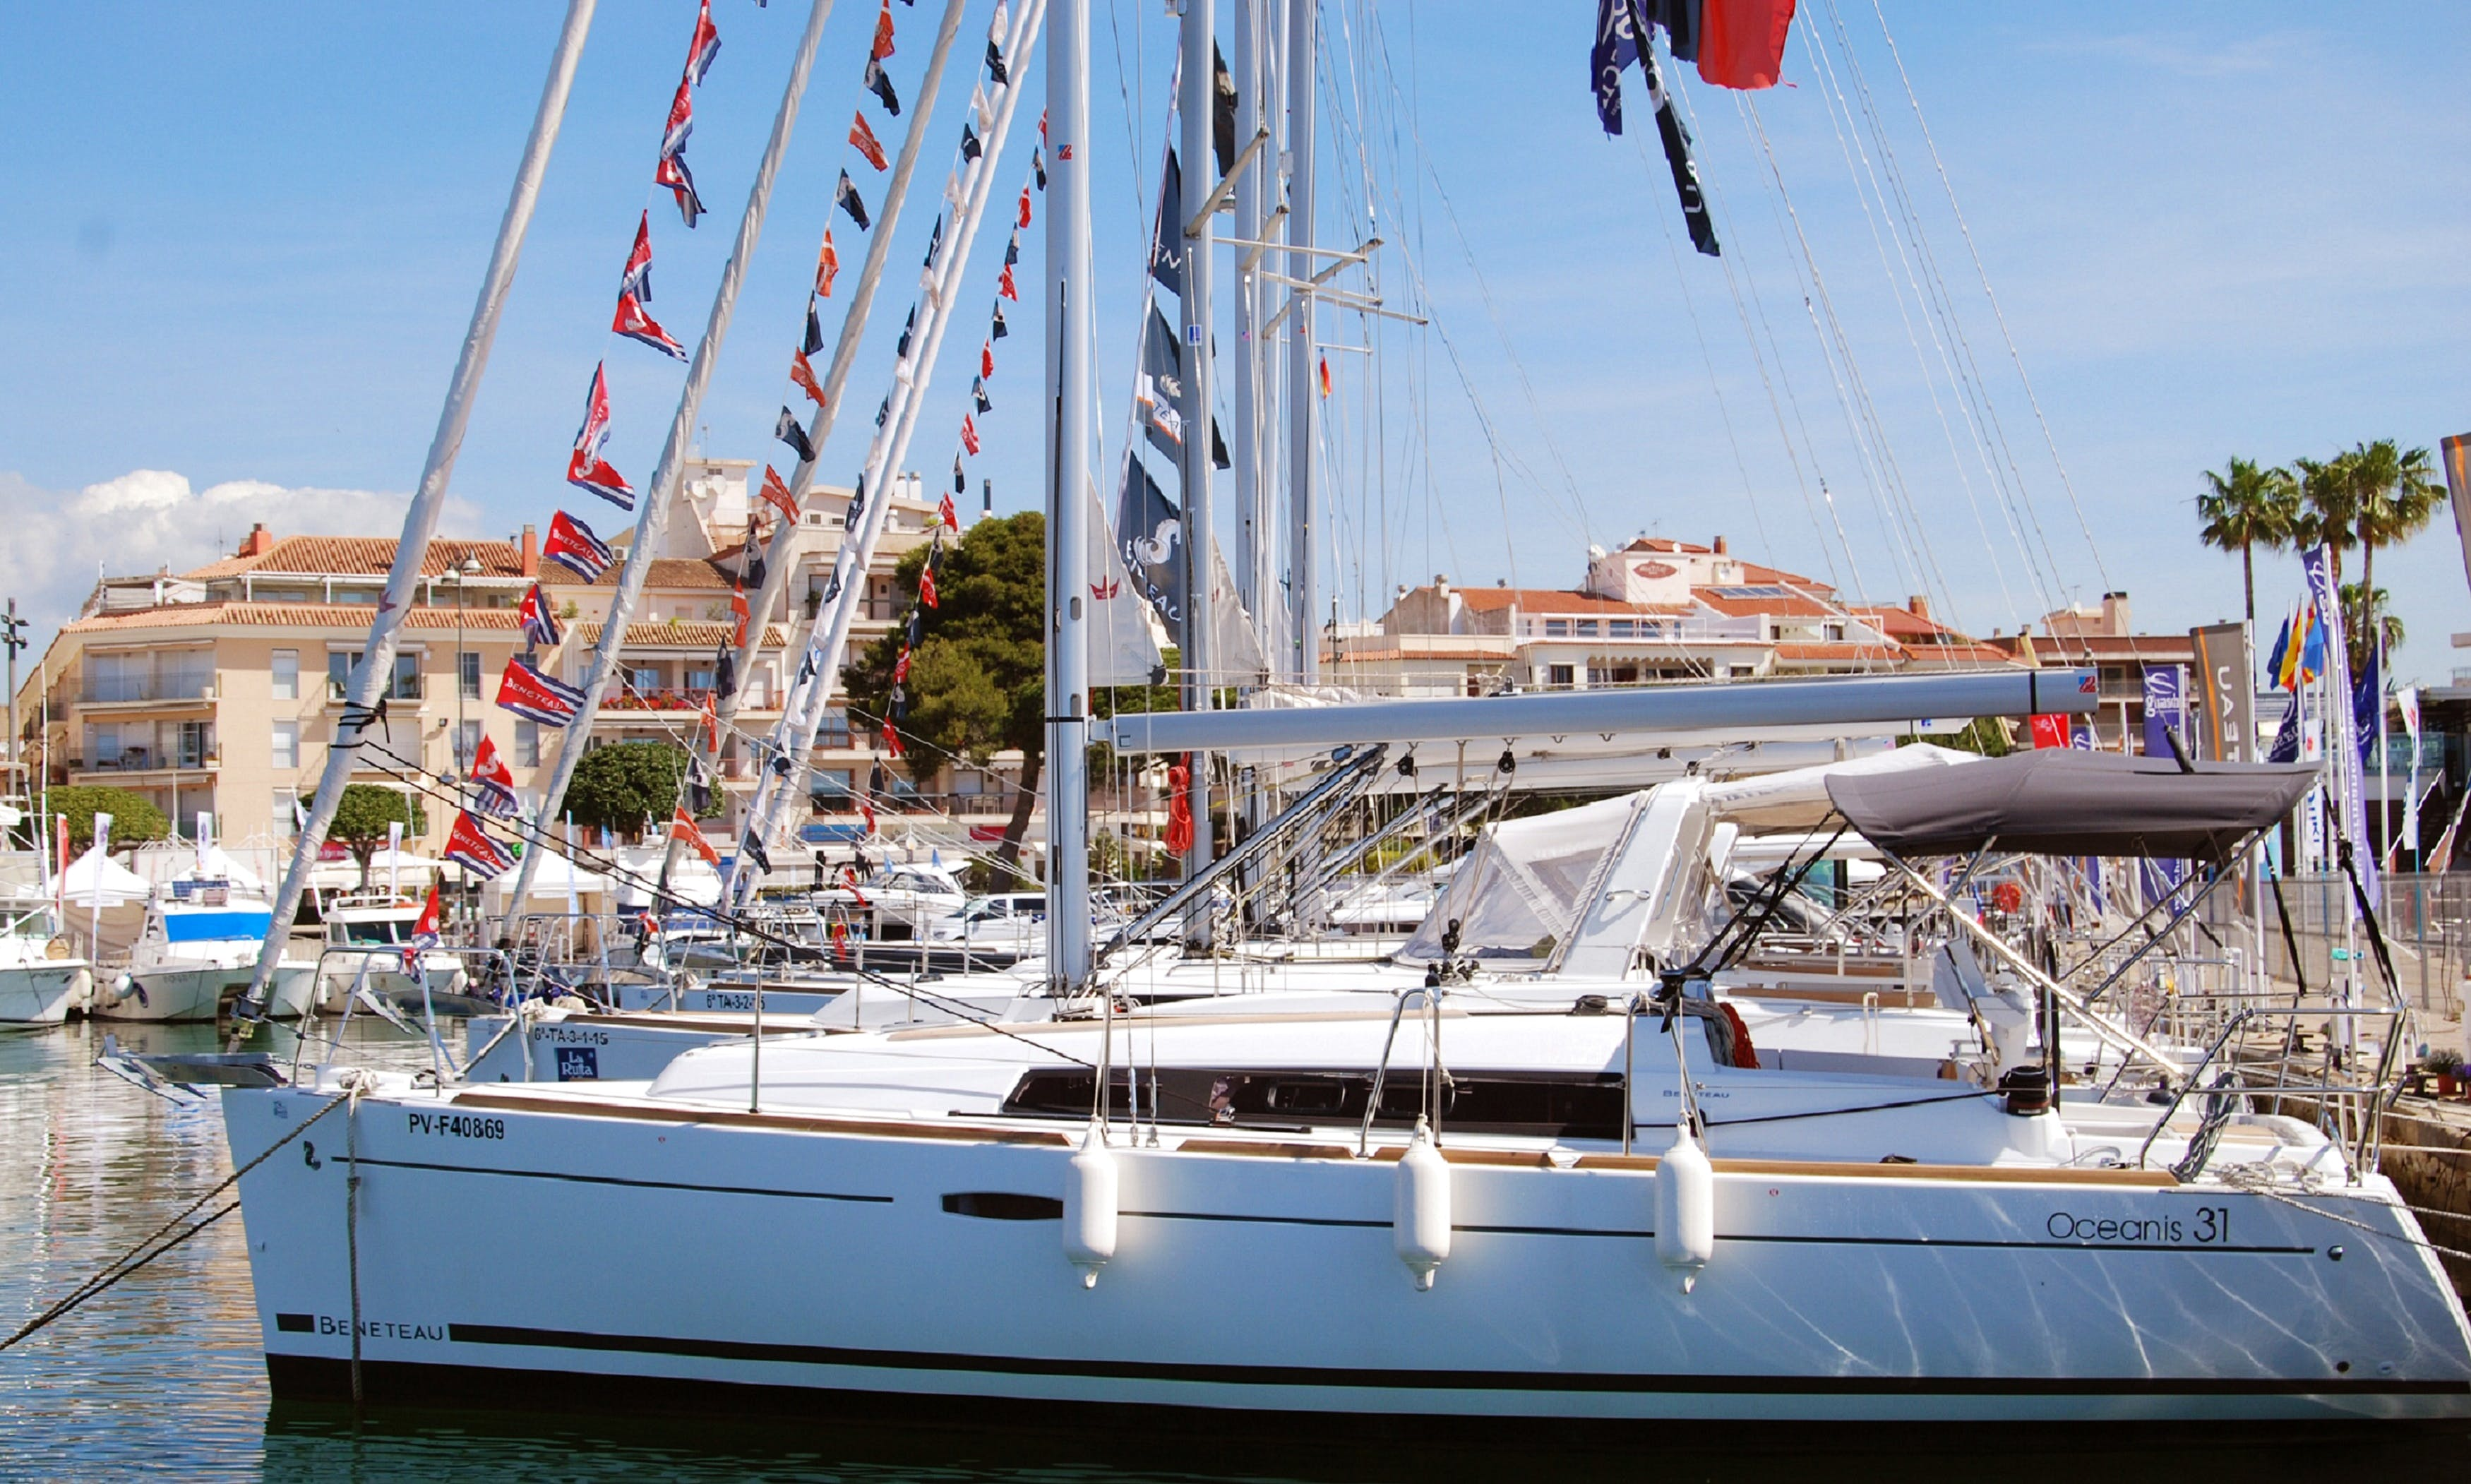 Charter this Beneteau Oceanis 31 Sailboat in l'estartit, Costa Brava.